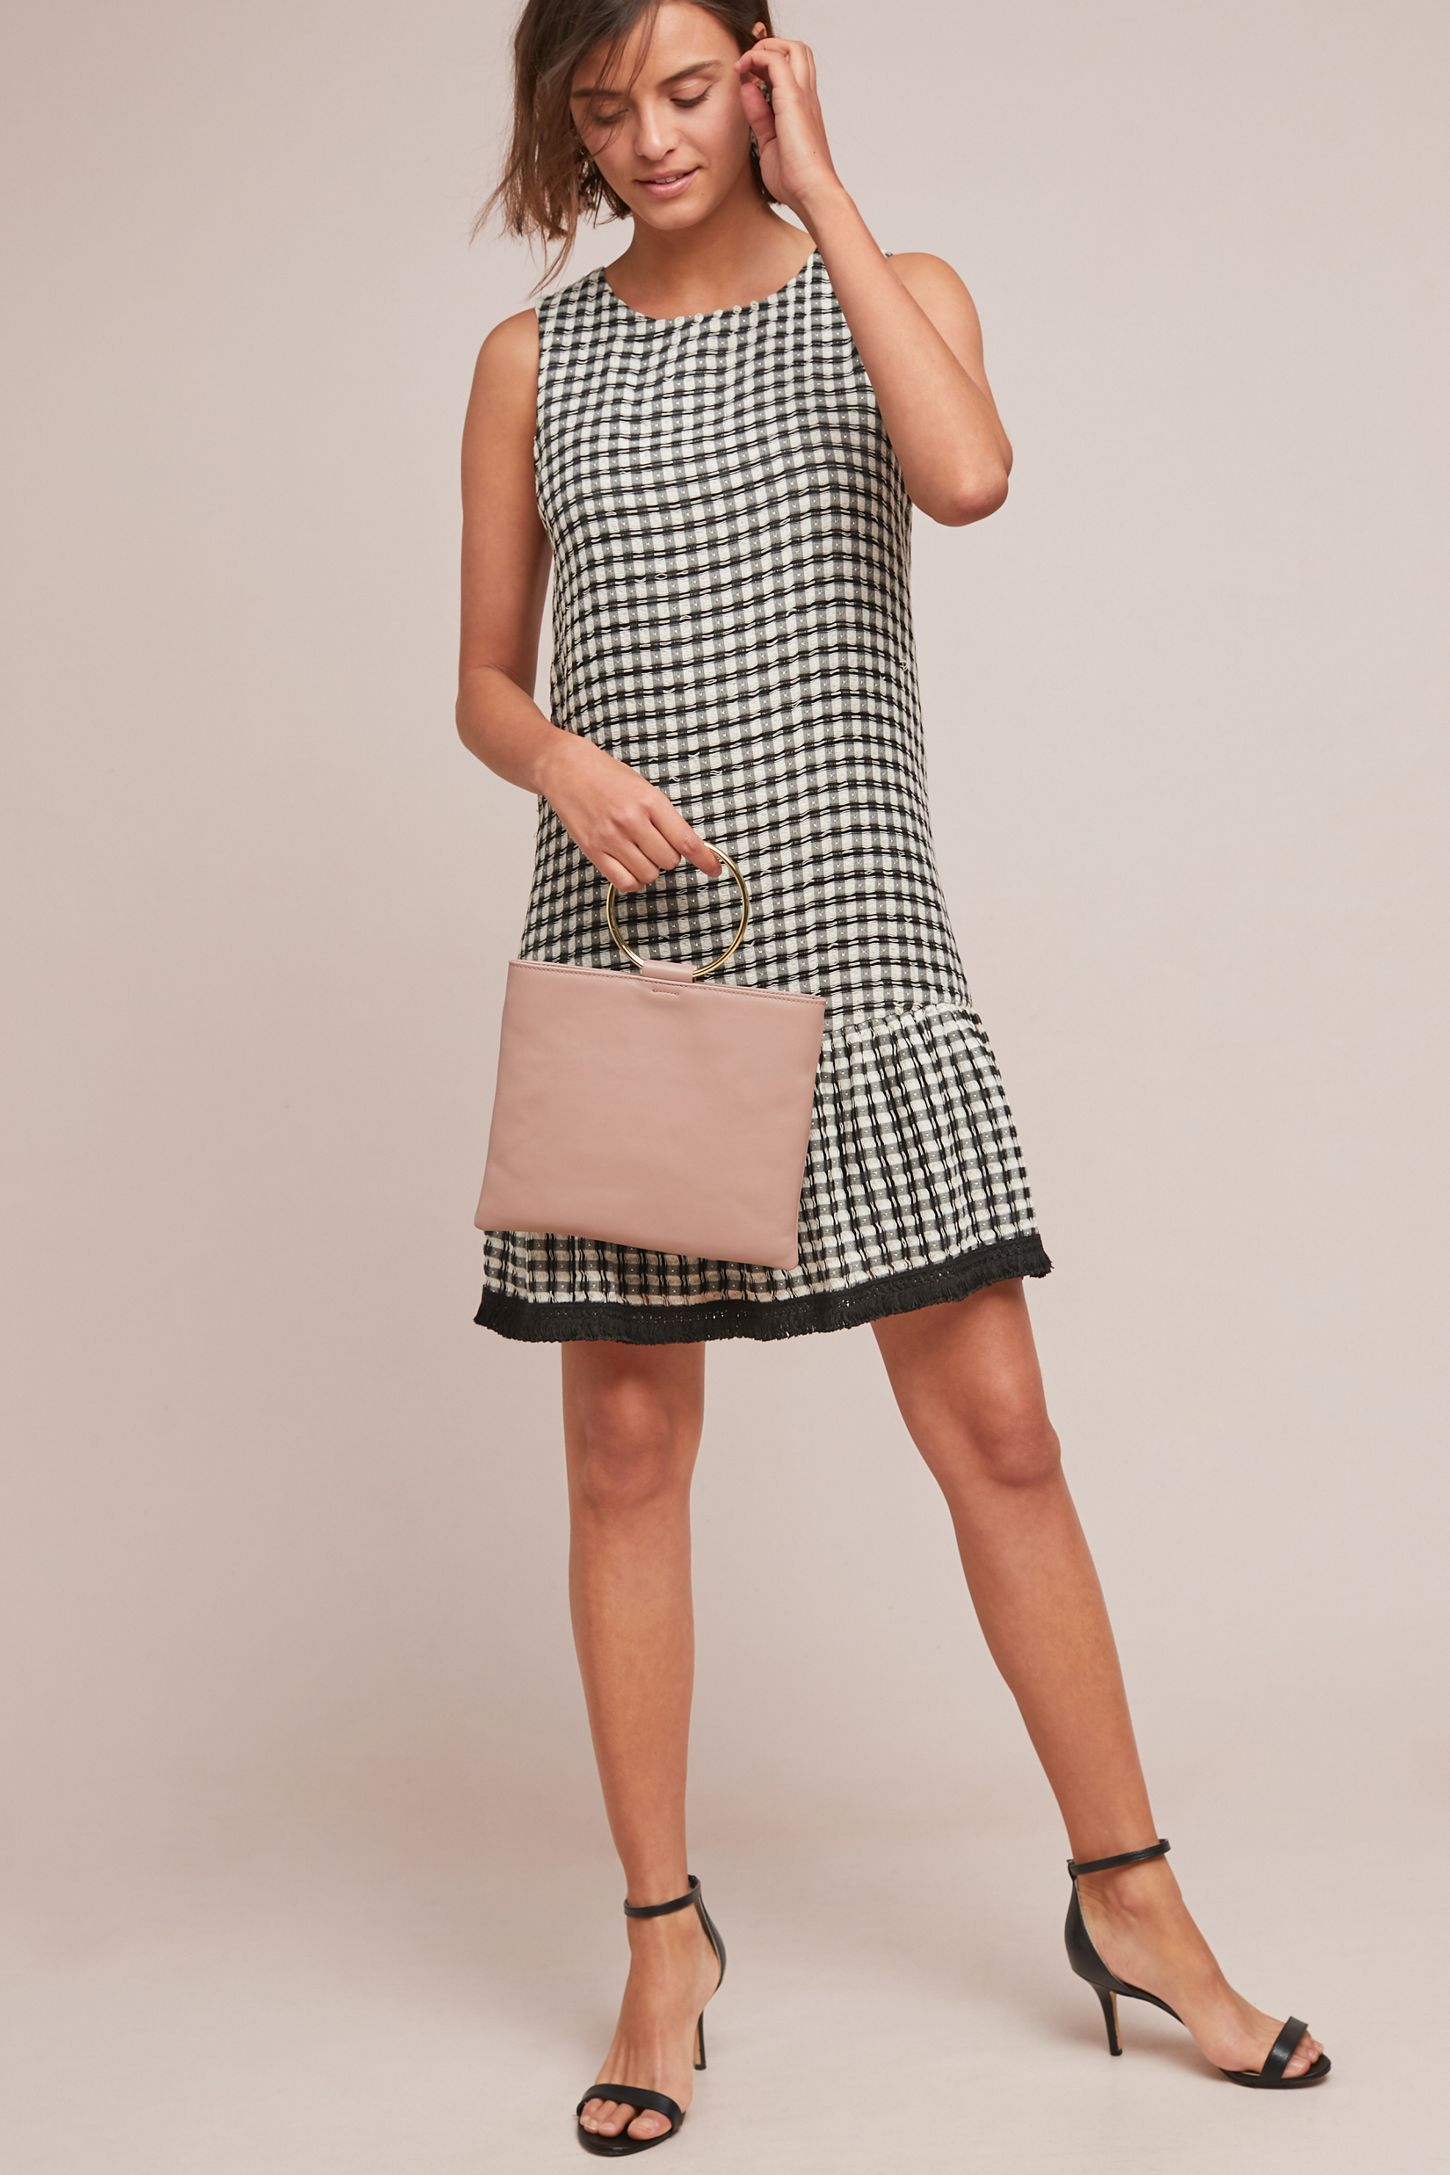 88b3dfa658bd Gingham Shift Dress | Anthropologie